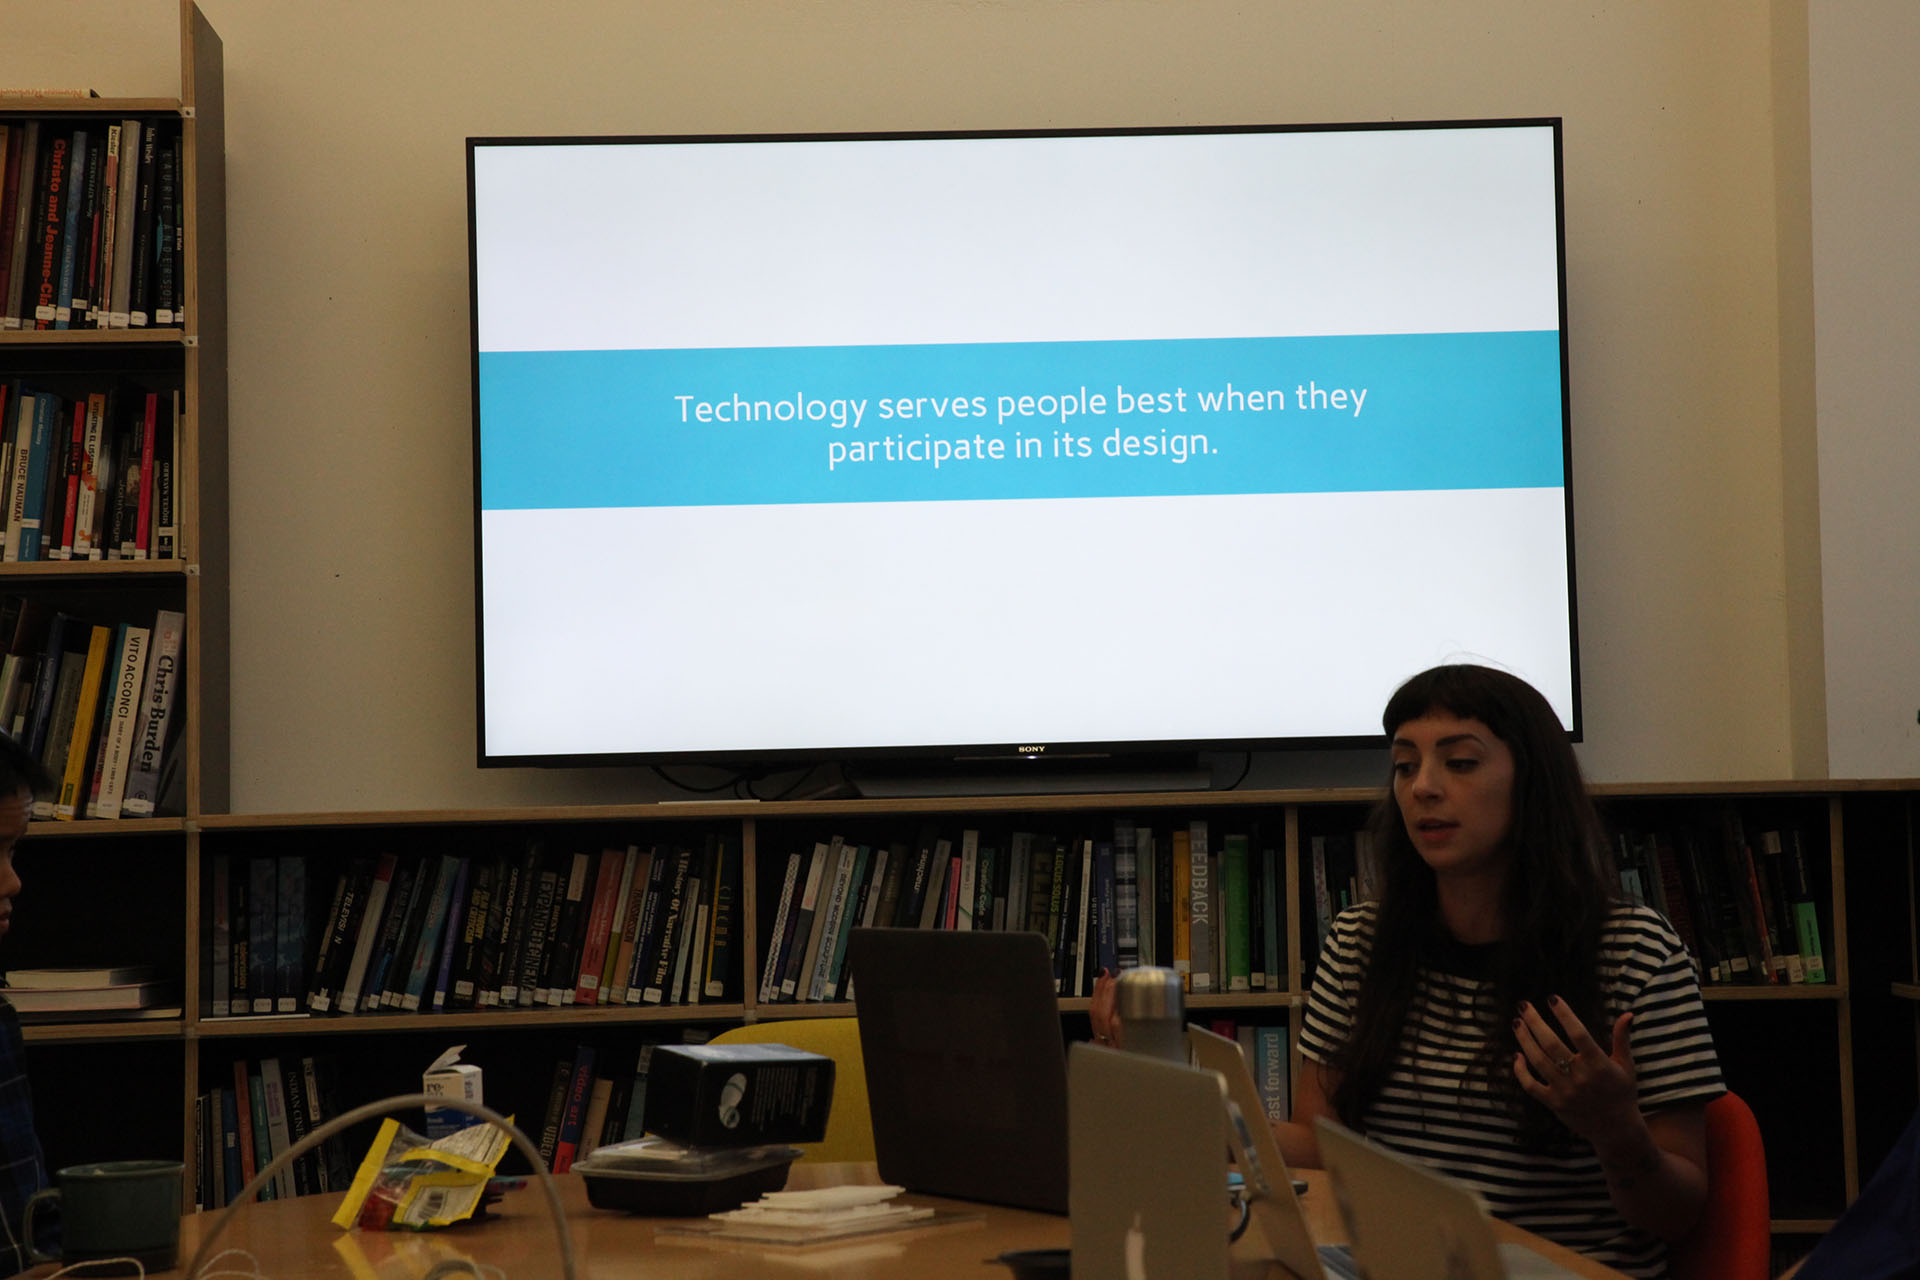 A woman giving a presentation in front of a TV. The presentation on the screen reads 'Technology serves people best when they participate in its design.'